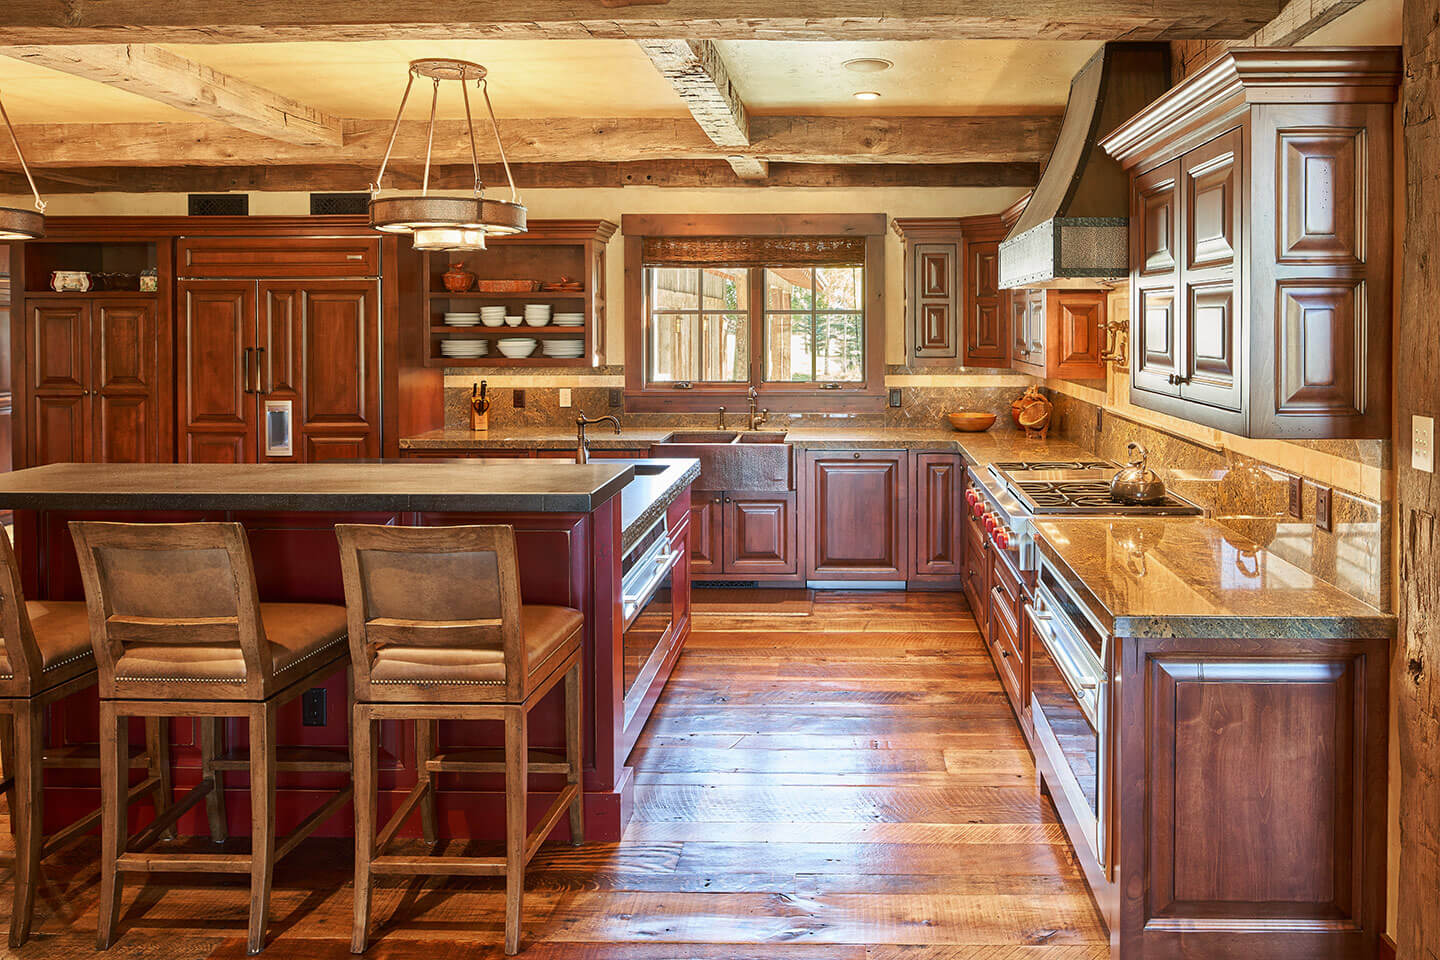 Kitchen with custom-made cherry wood cabinetry